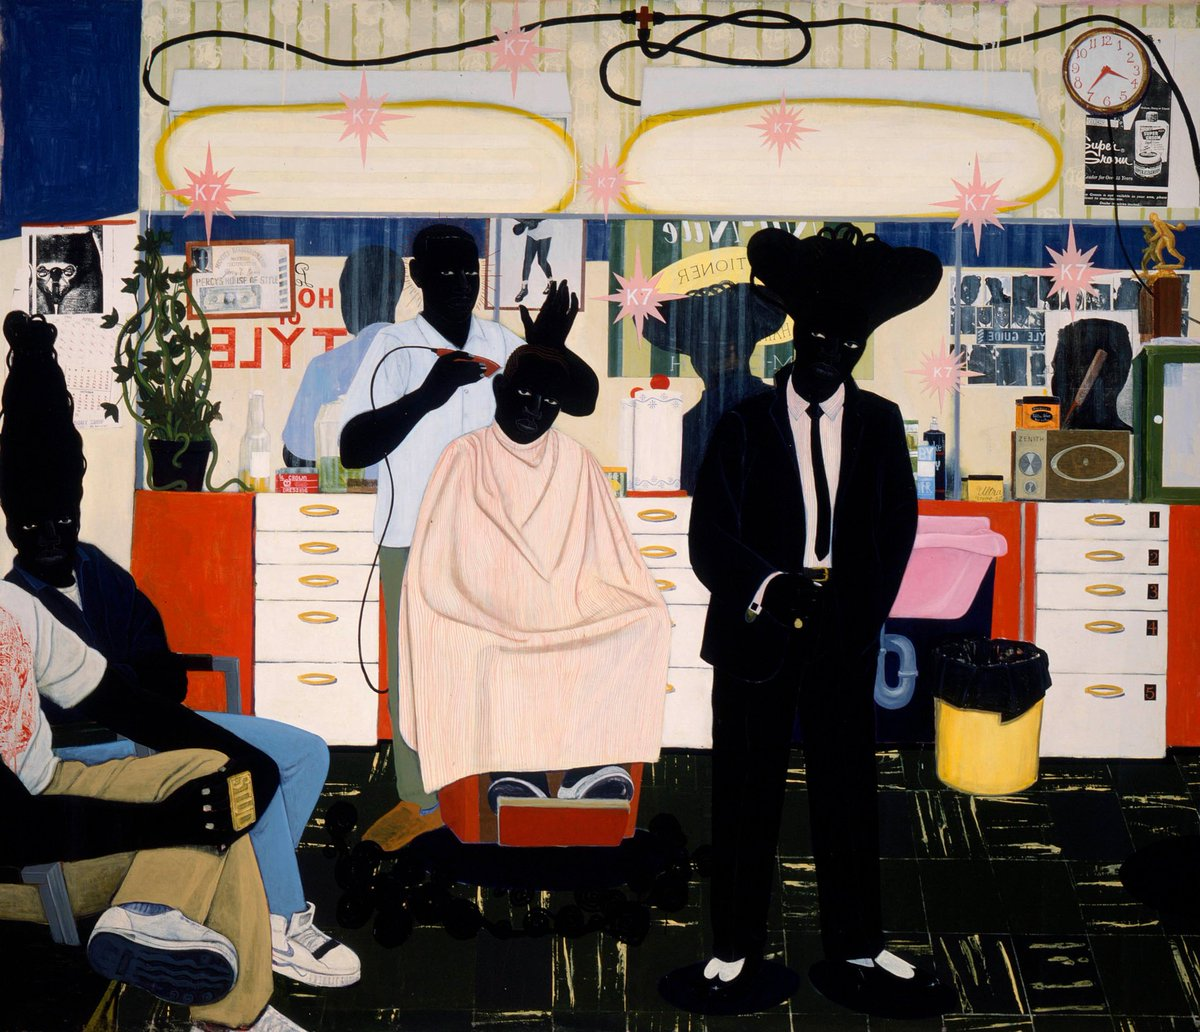 Kerry James Marshall, Boldly Repainting Art History https://t.co/JCh1hizNuR https://t.co/JjR4KIiEOE